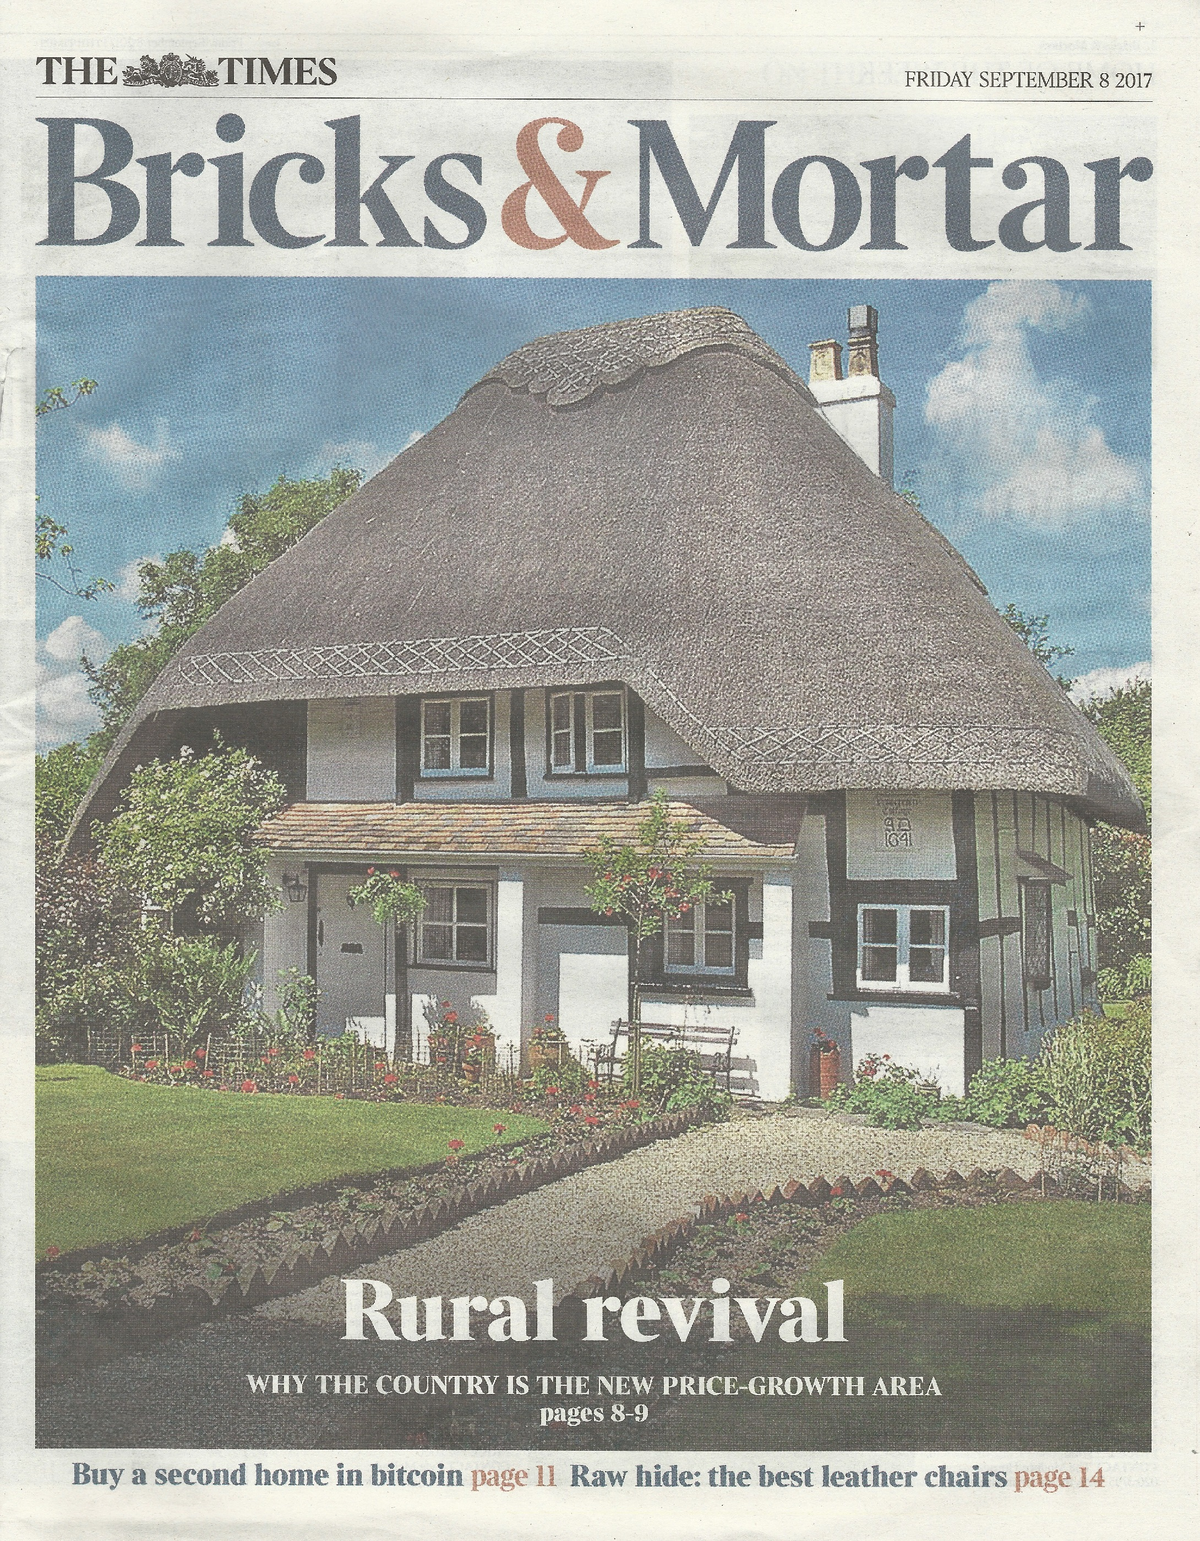 08.09.17 - The Times Bricks & Mortar cover